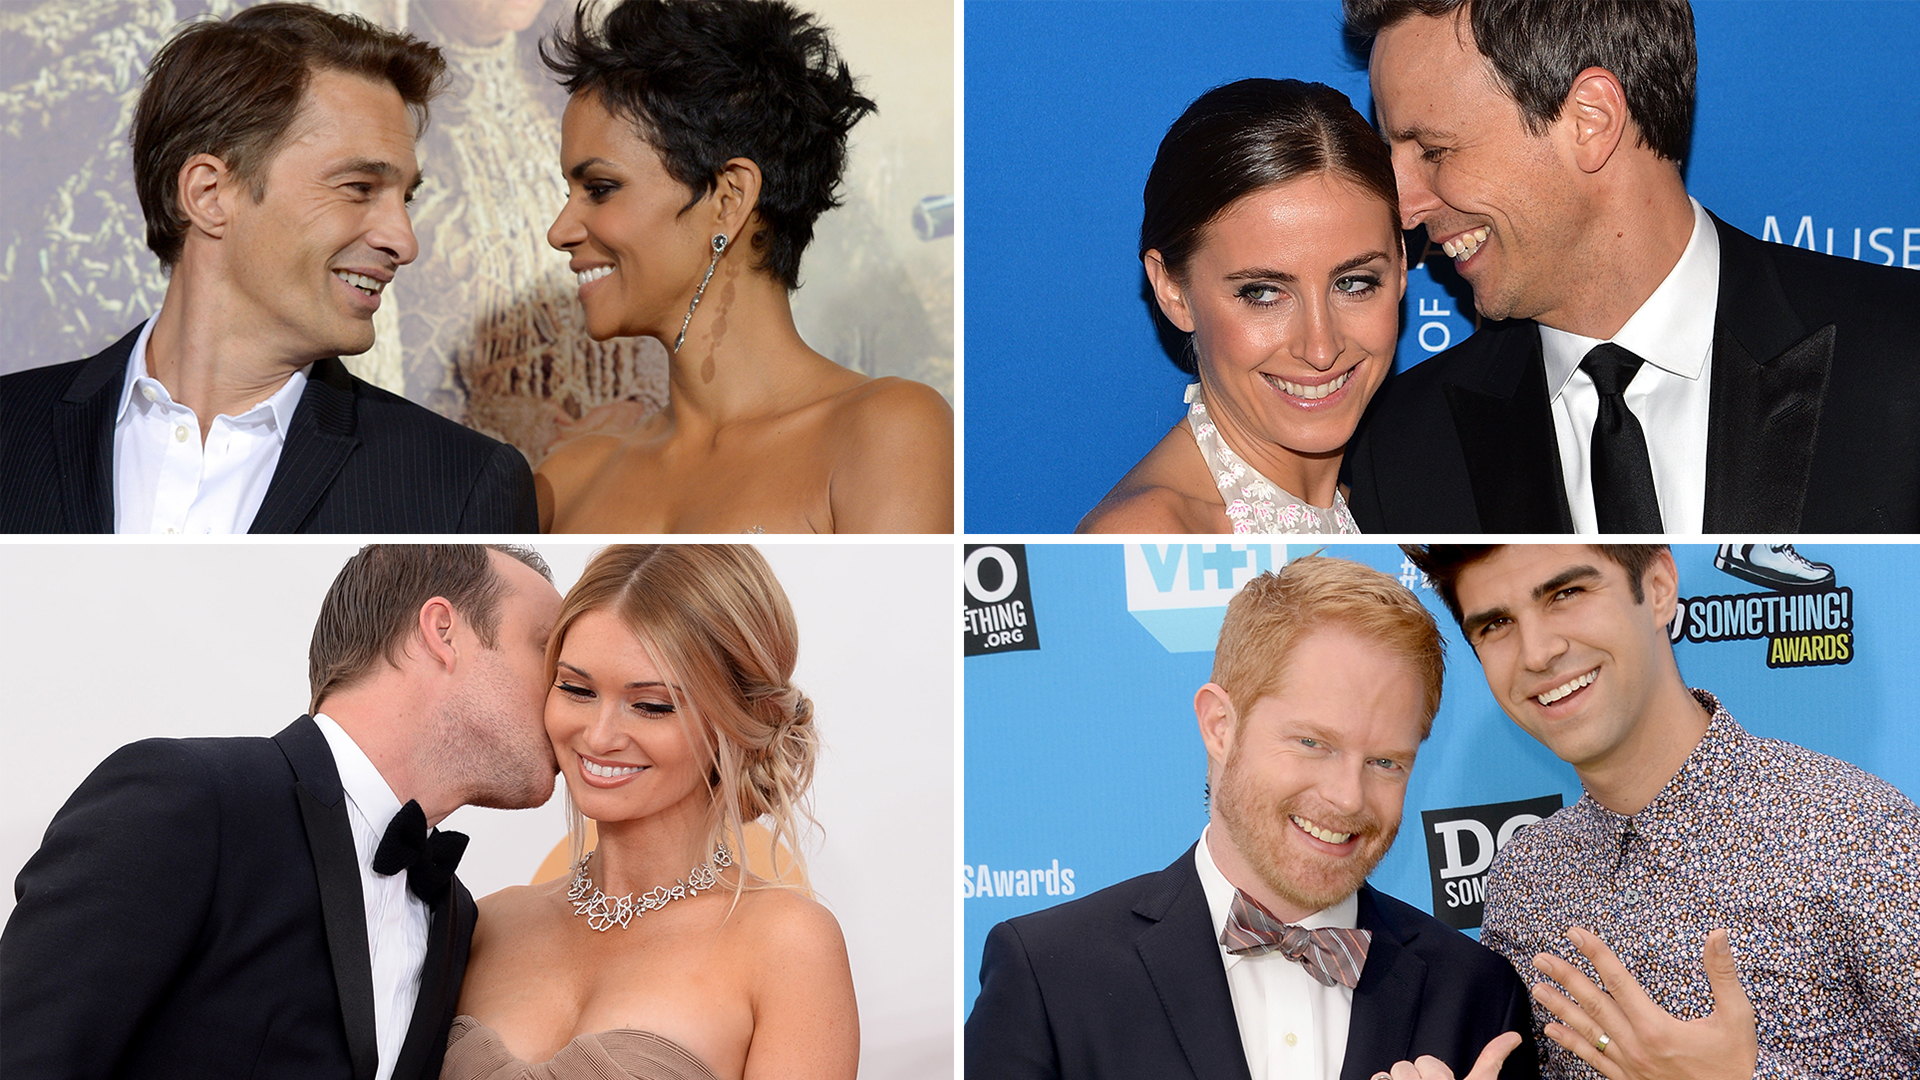 They liked it and put a ring on it: Celebrity weddings of 2013